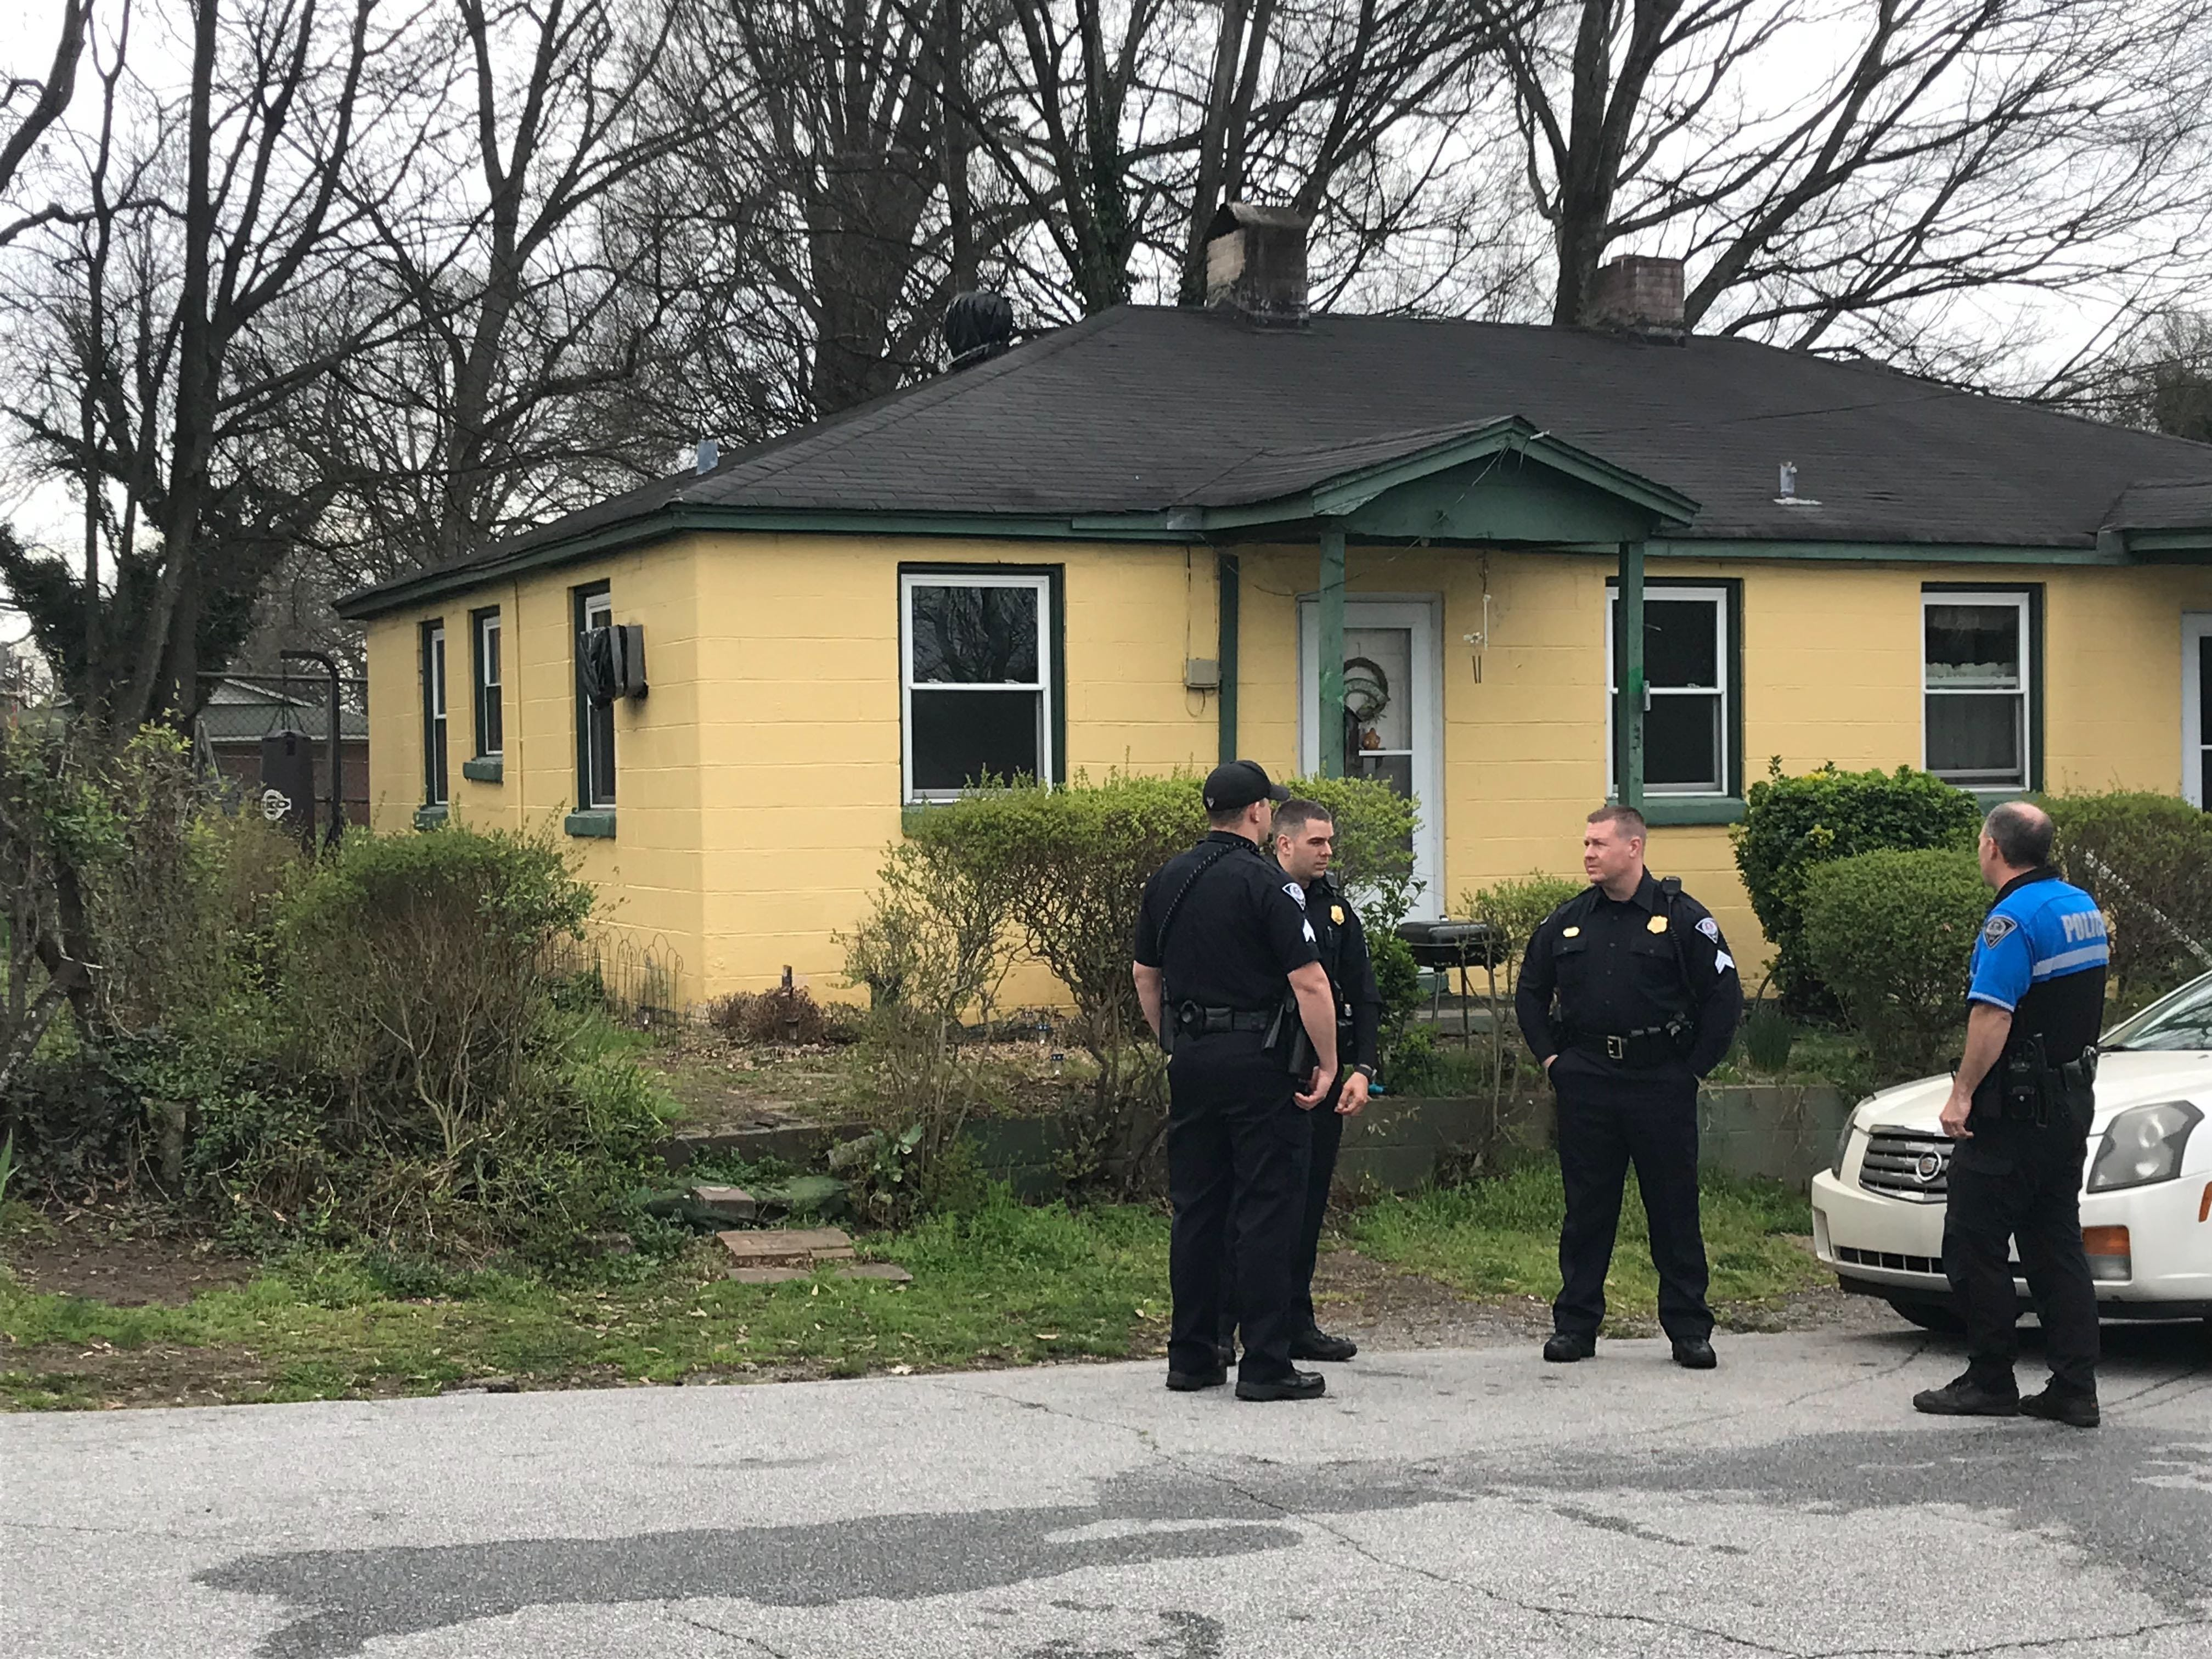 Police at the scene of an apparent attack by dogs in Greenville's Trescott Street on Thursday, March 14, 2019